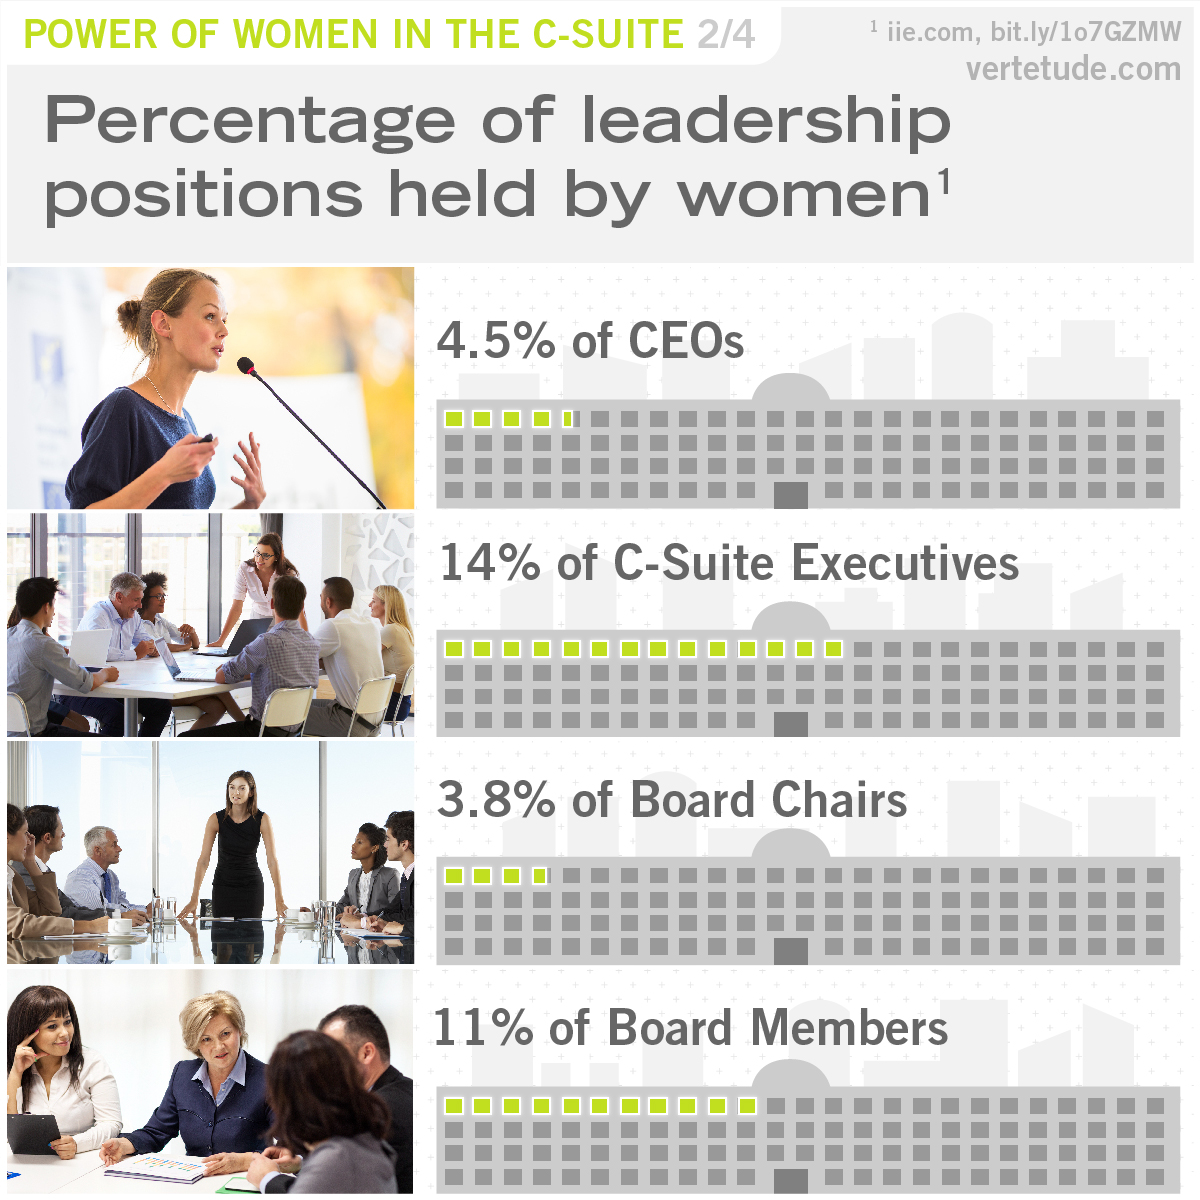 Infographic of percentage of leadership positions held by women